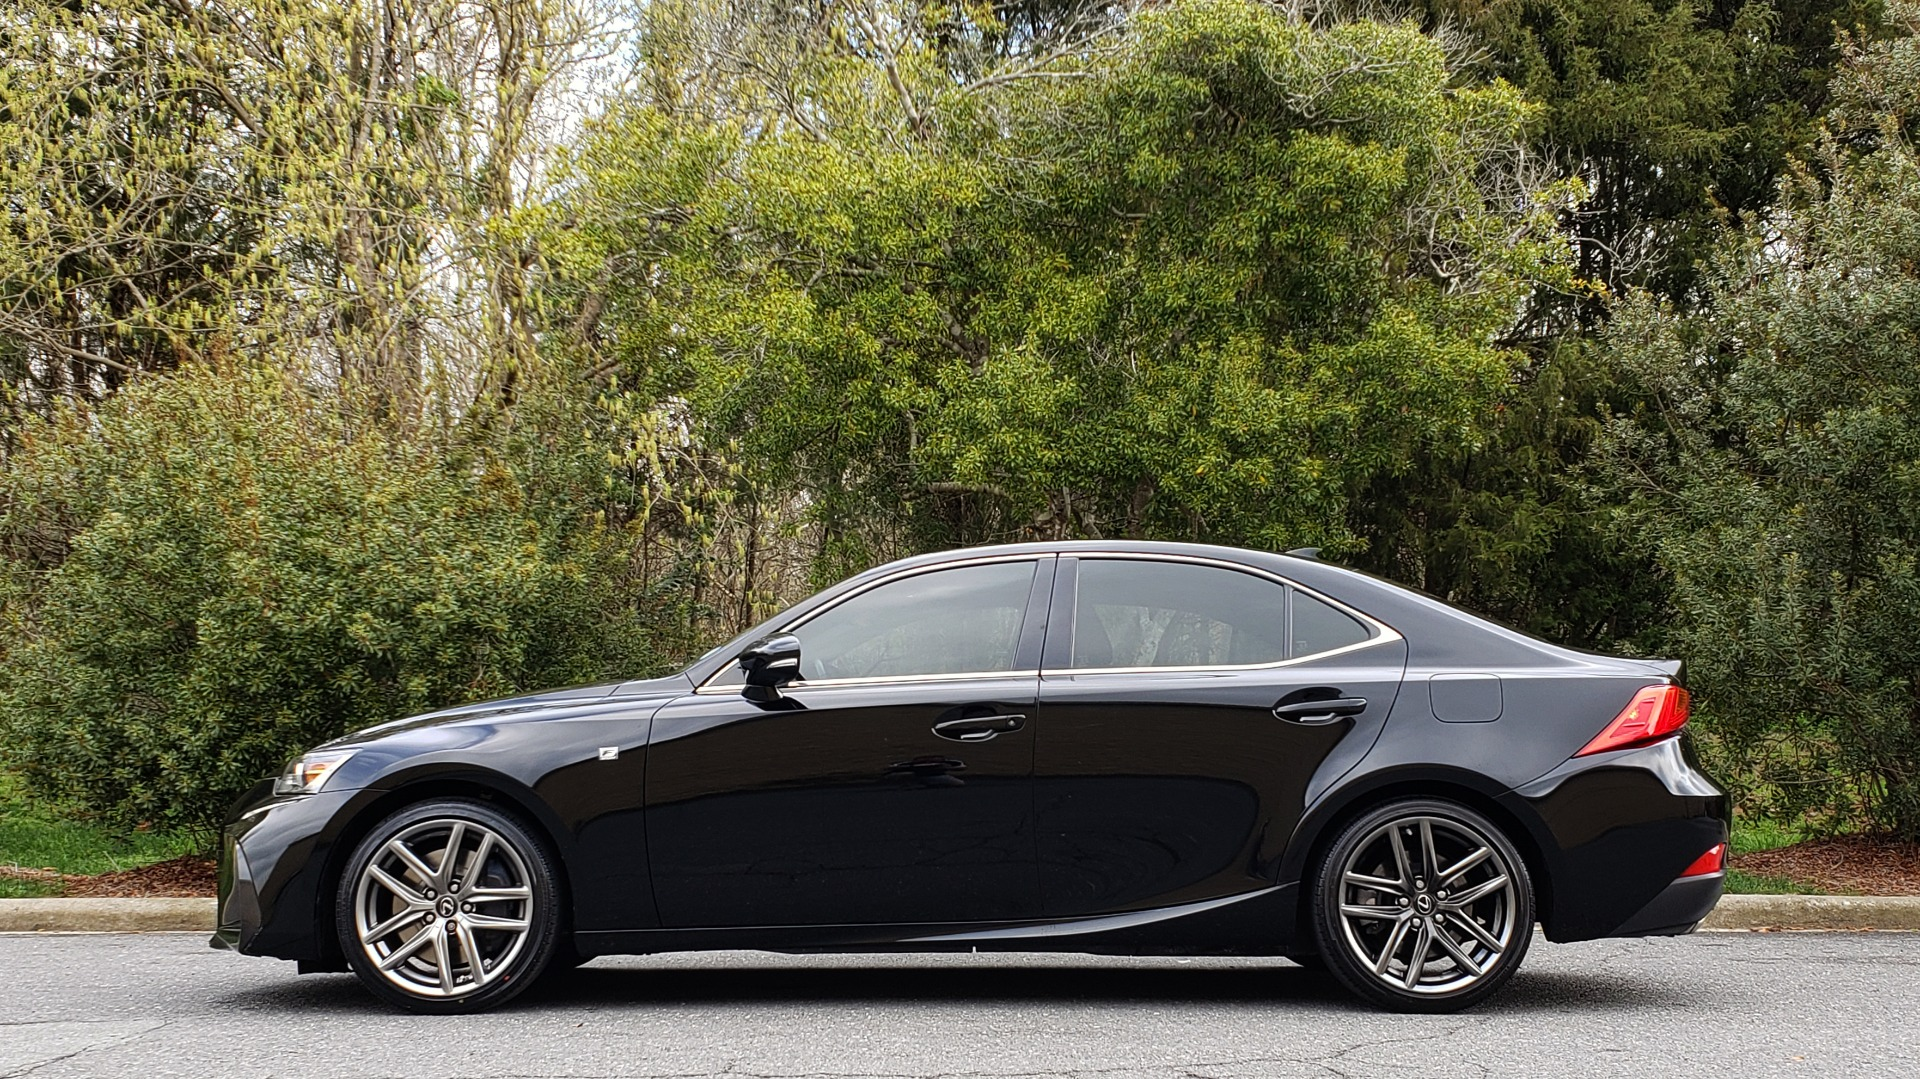 Used 2017 Lexus IS 200T F-SPORT / SUNROOF / REARVIEW / VENT SEATS for sale Sold at Formula Imports in Charlotte NC 28227 2